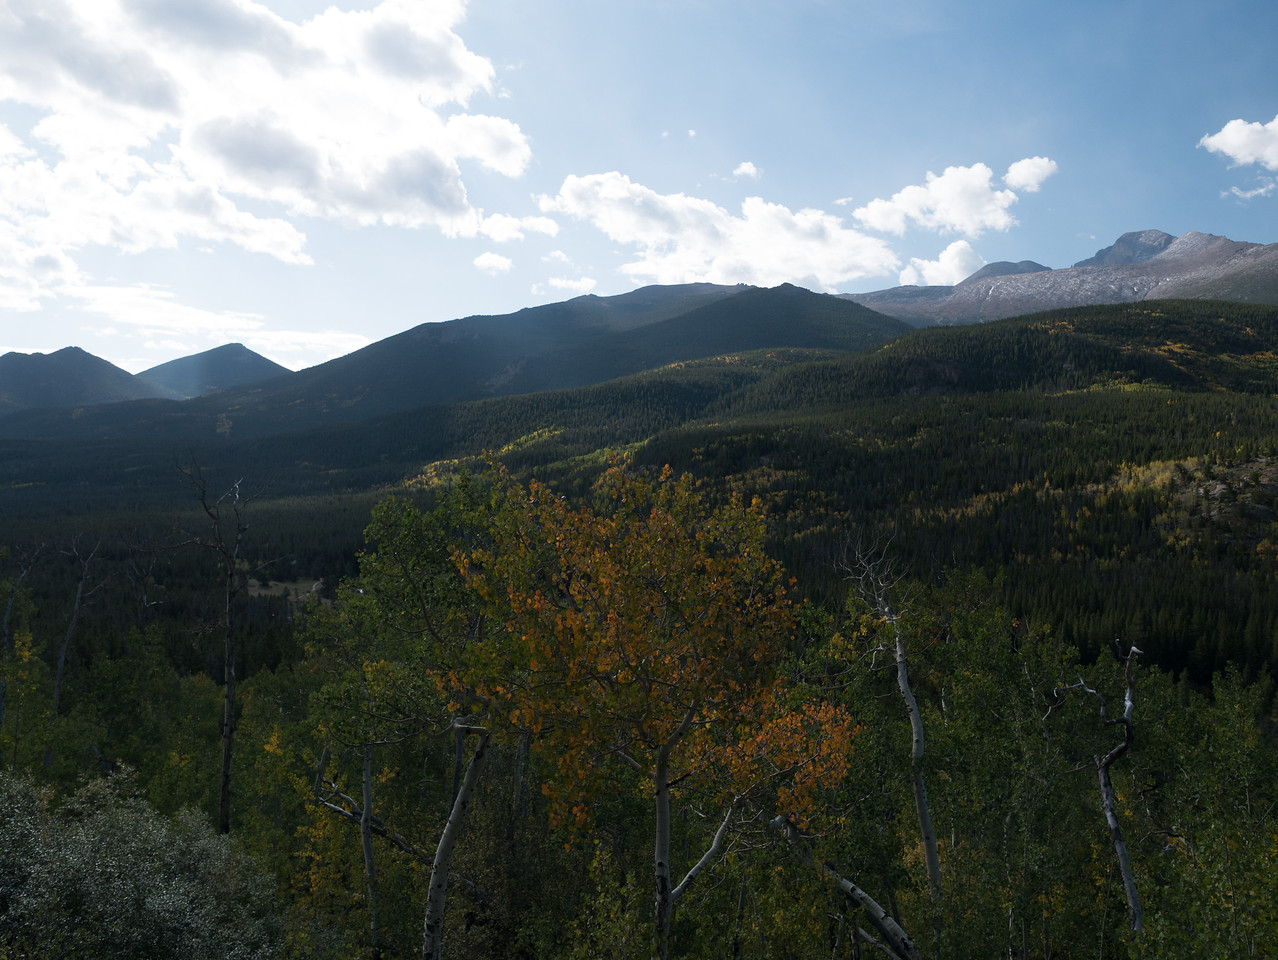 View of the Rockies